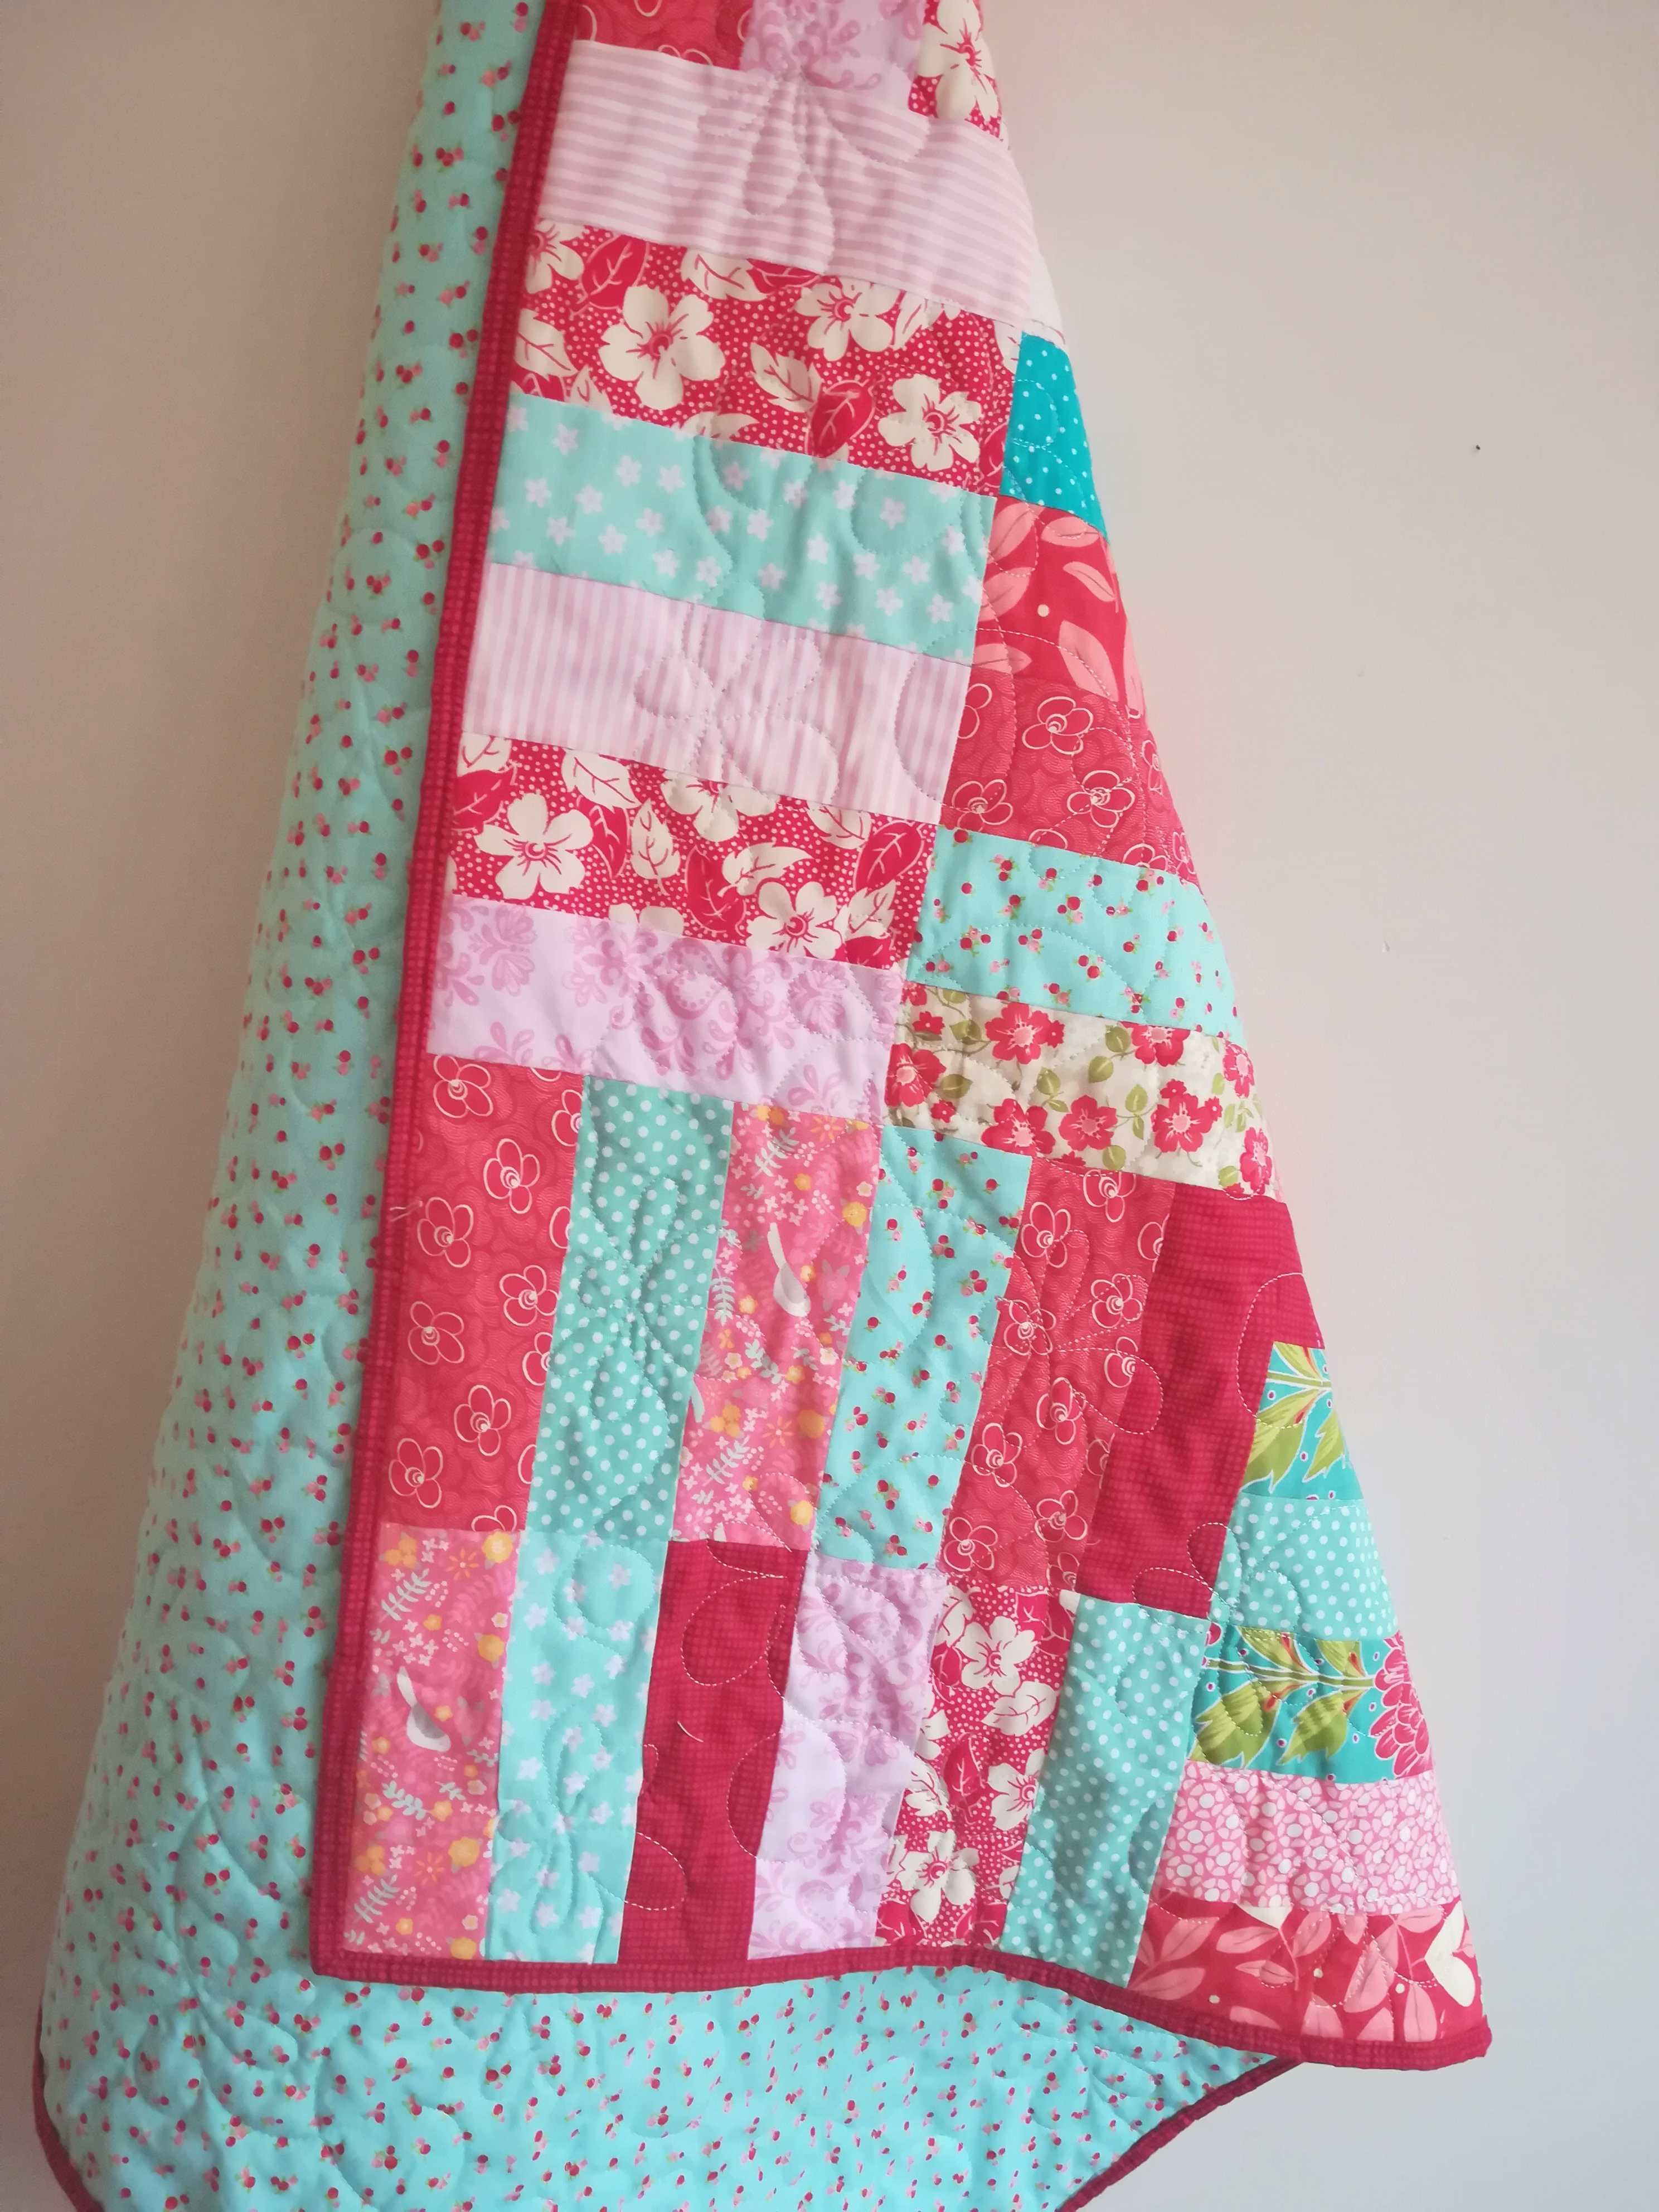 Baby Quilts.com Turquoise Reds And Pinks Make For A Very Pretty Baby Quilt